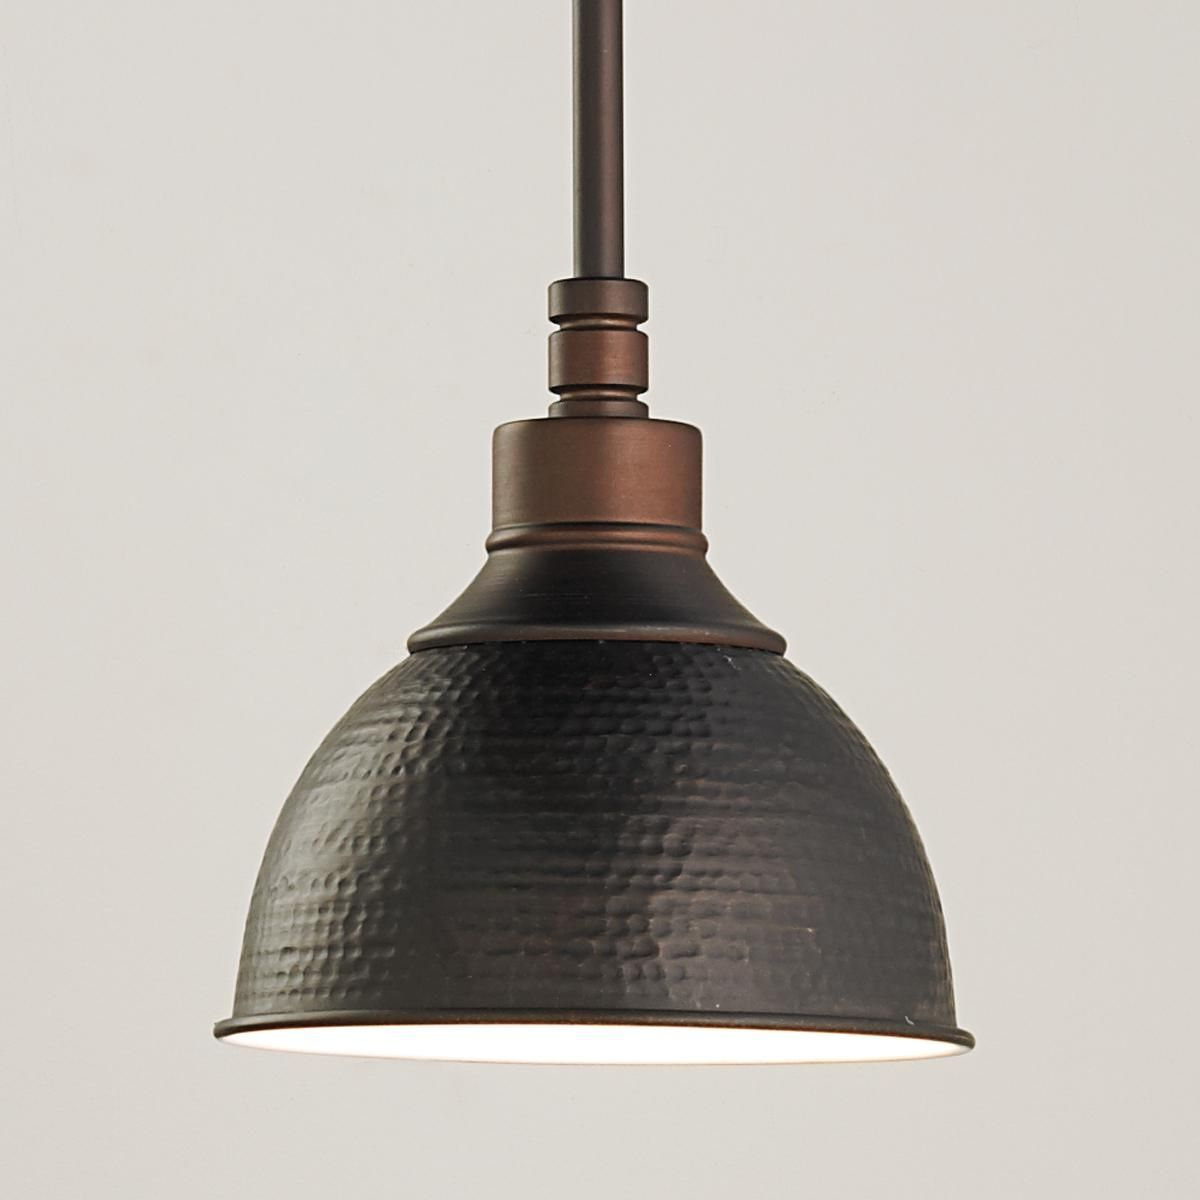 Hammered Metal Pendant Light - Small | Küche